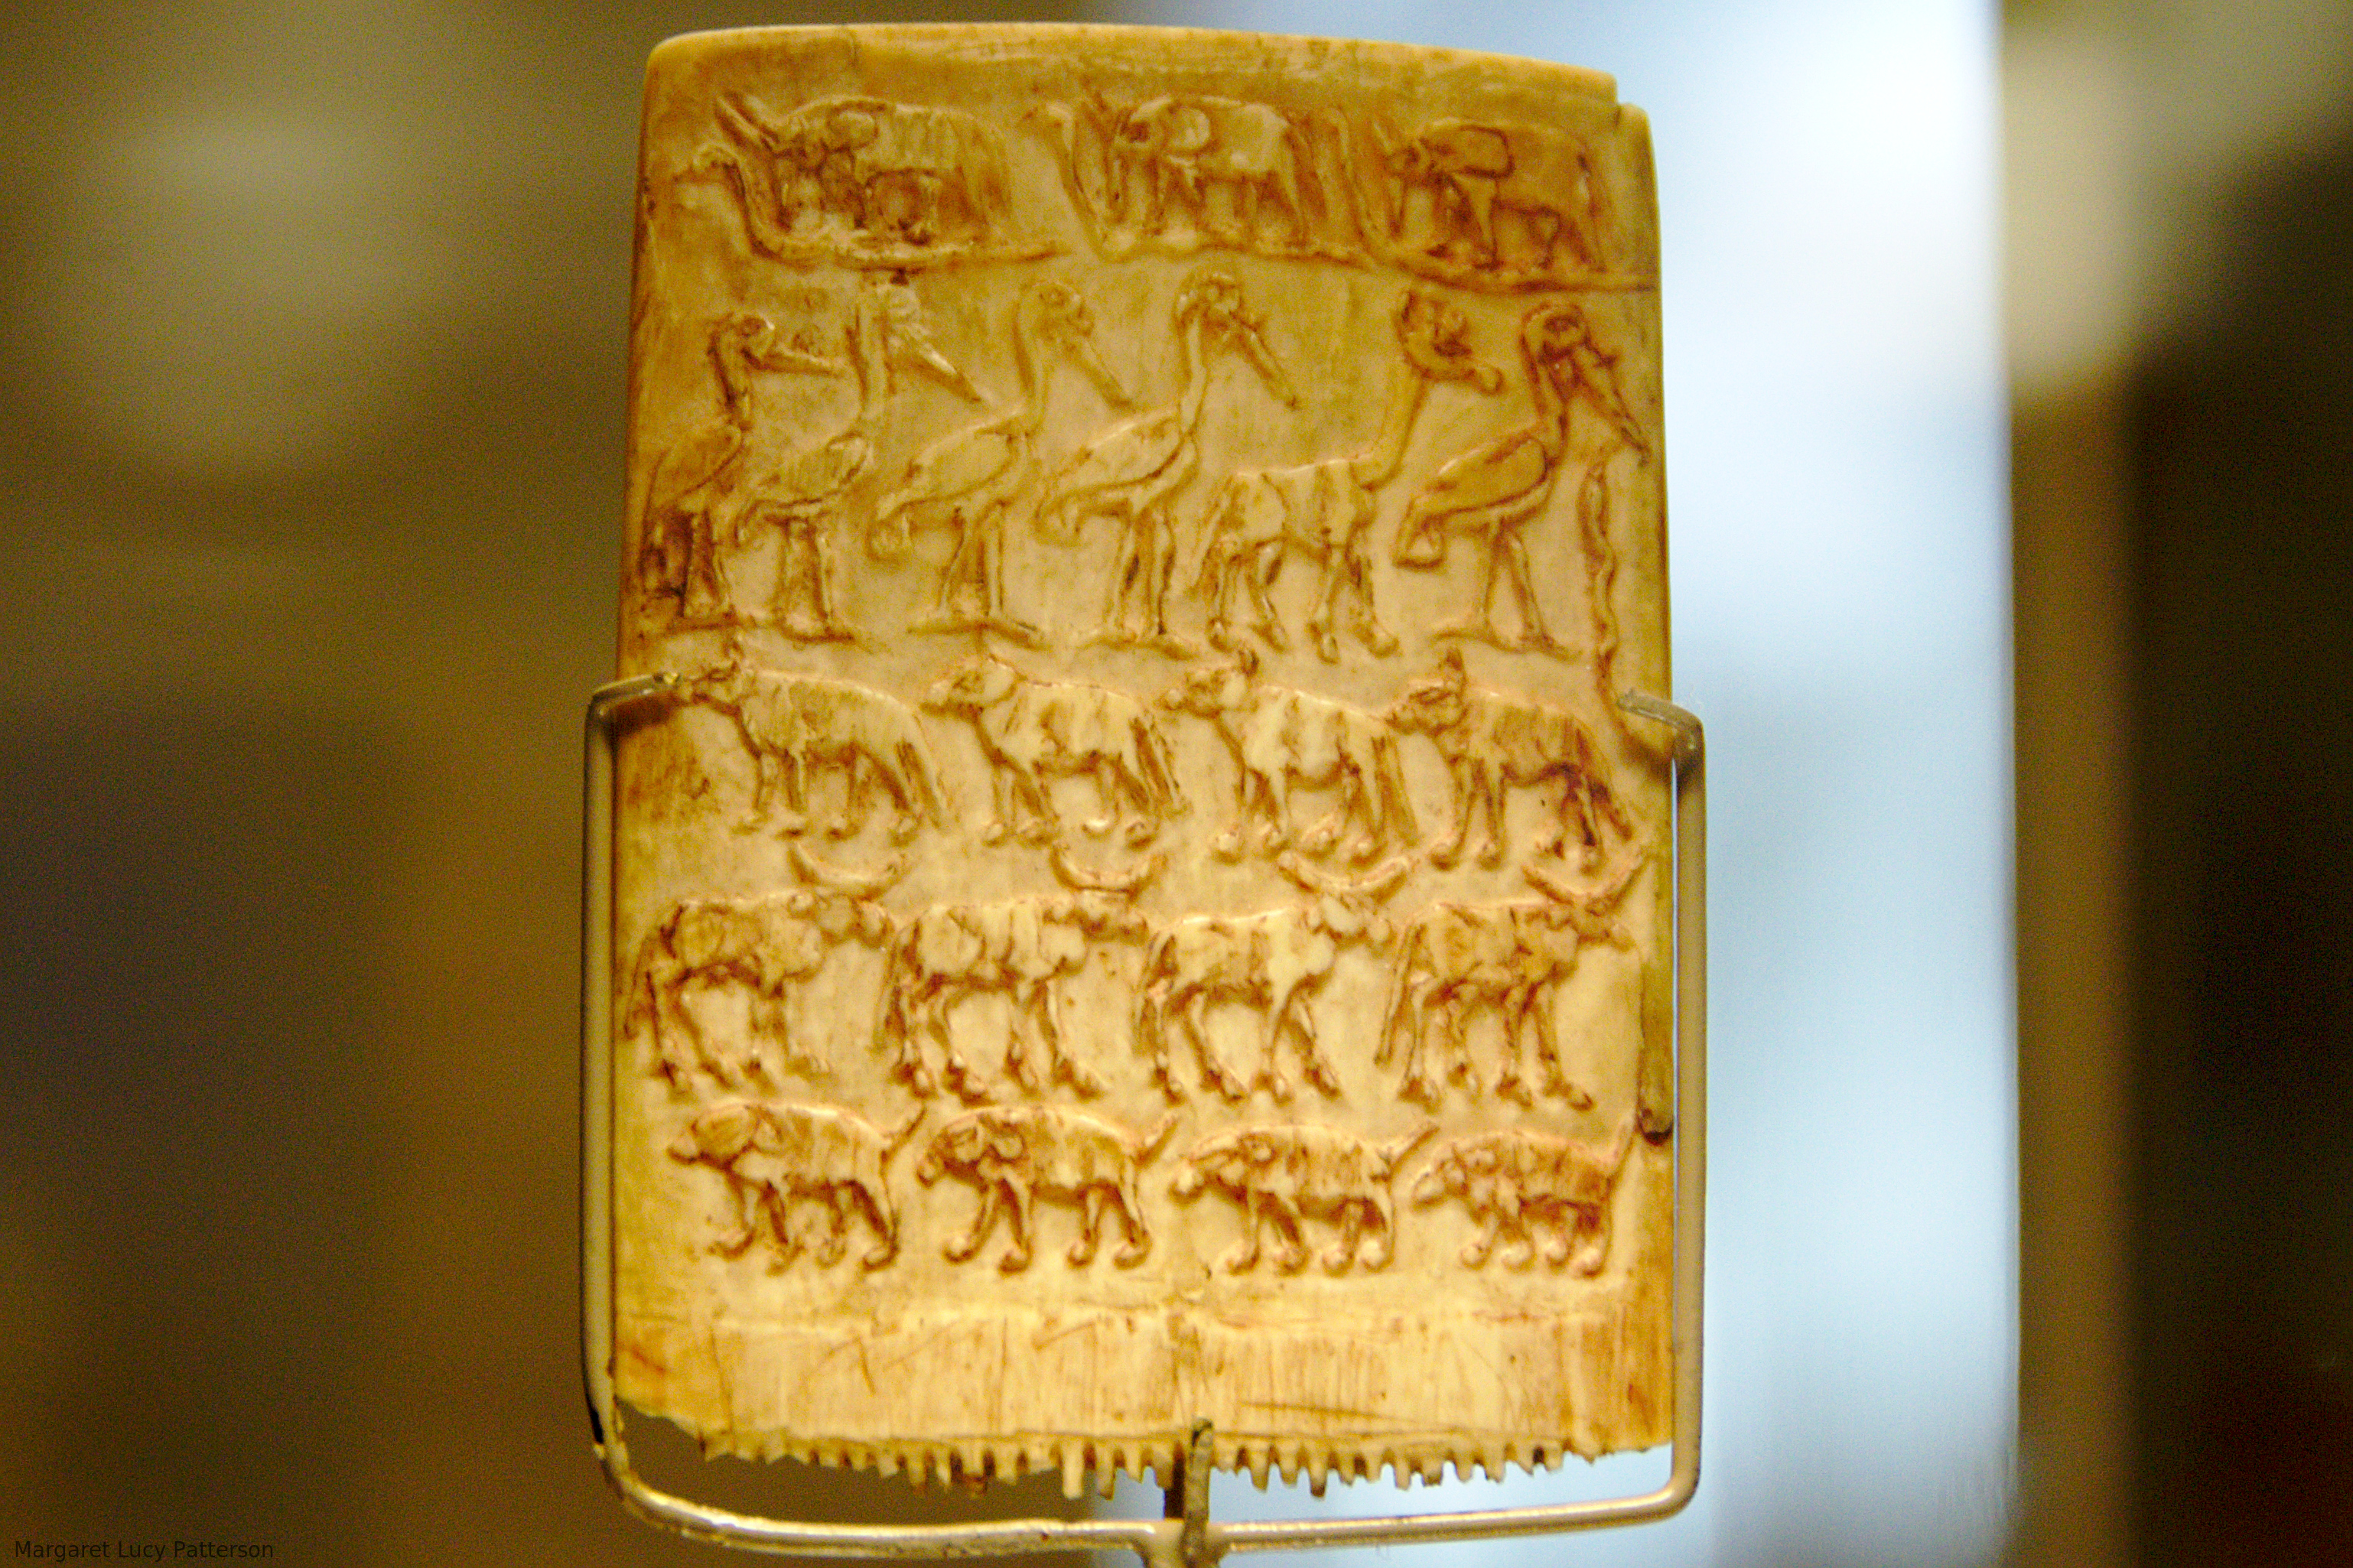 A Predynastic ornamental comb carved with rows of animals, including a row of long legged birds which includes a giraffe.